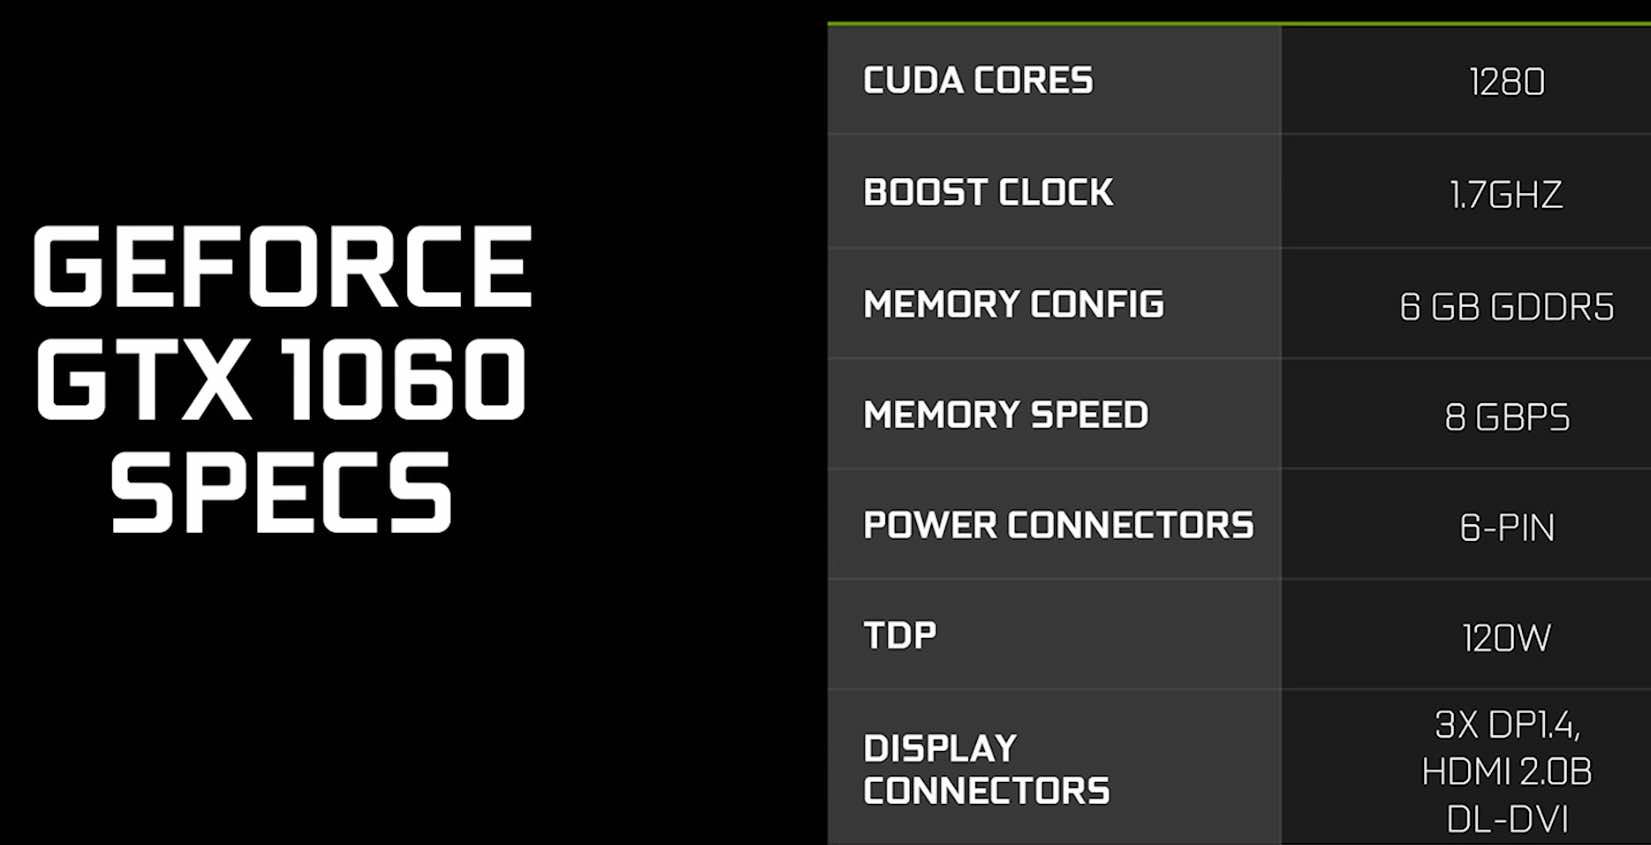 Nvidia GeForce GTX 1060 specs